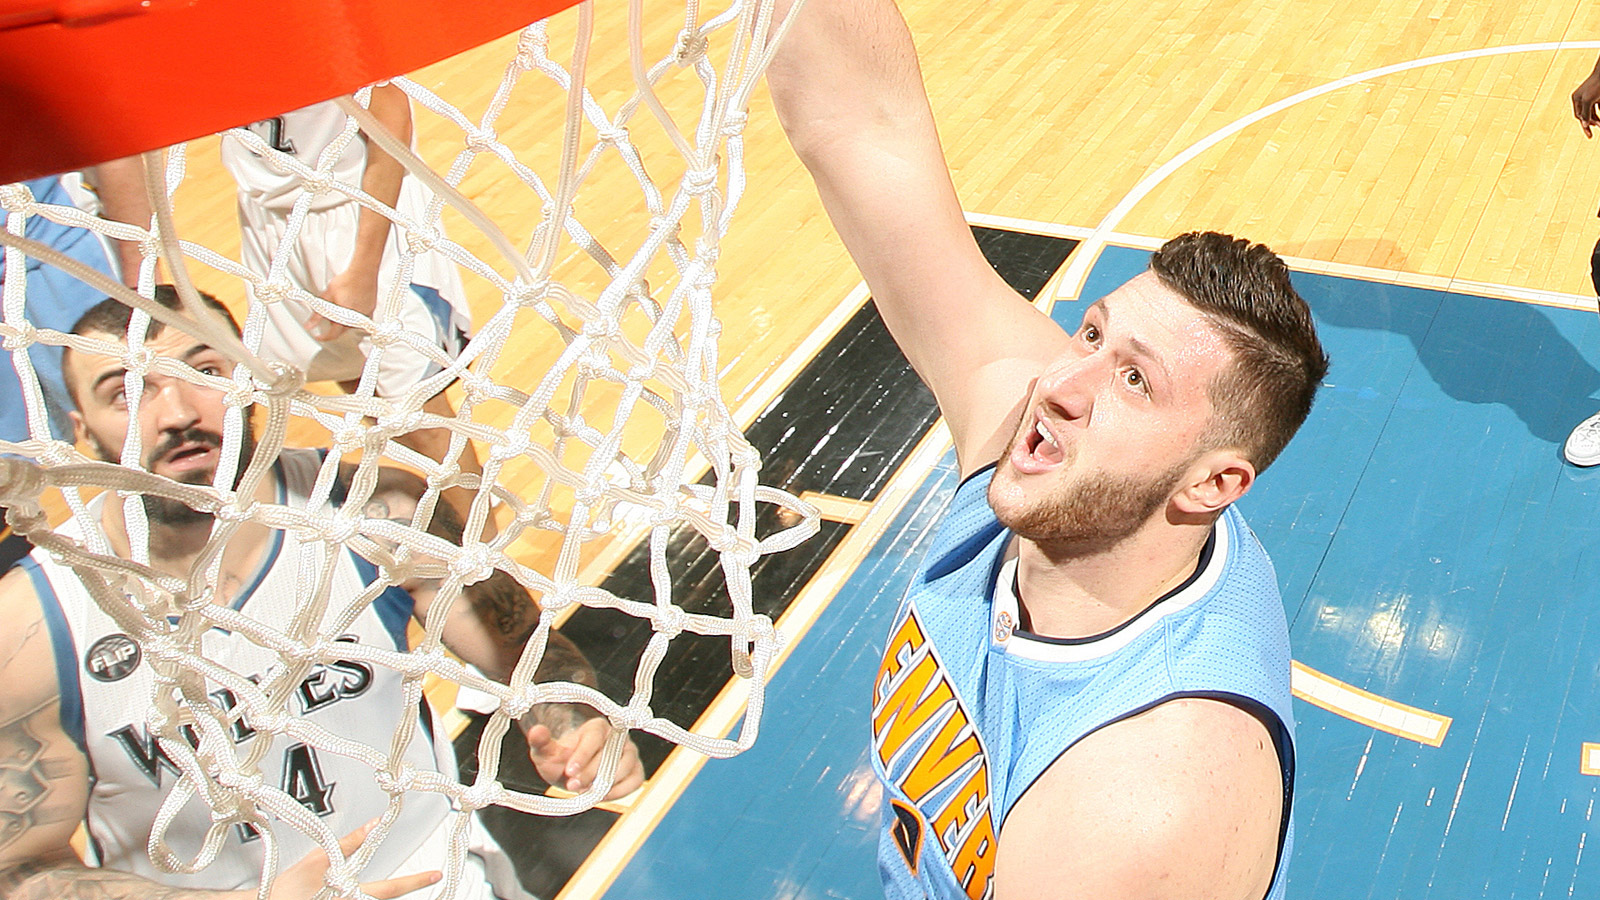 Jusuf Nurkic of the Denver Nuggets shoots the ball against the Minnesota Timberwolves on January 2, 2016 at Target Center. (credit: David Sherman/NBAE via Getty Images)